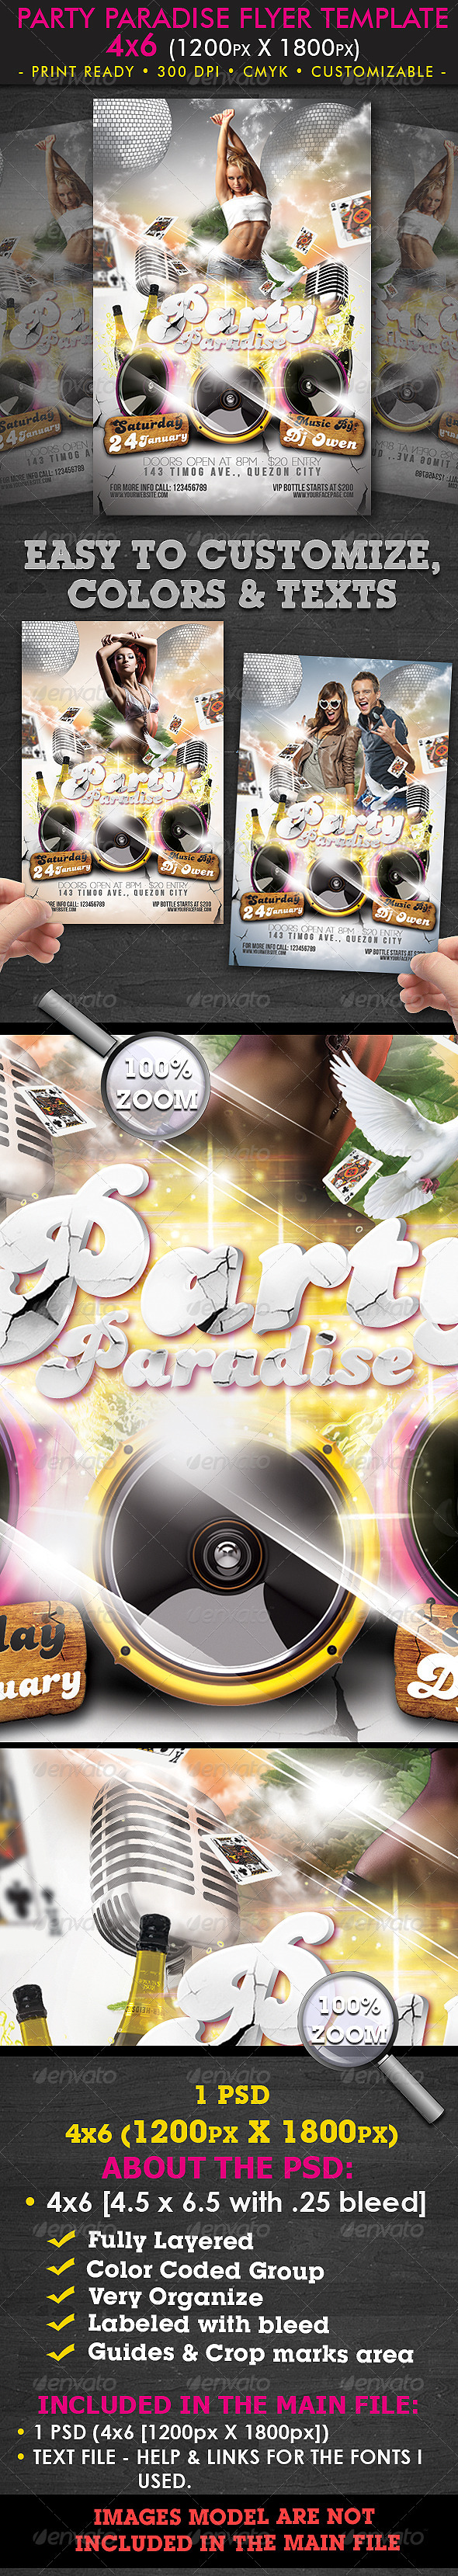 Party Paradise Flyer Template - Clubs & Parties Events